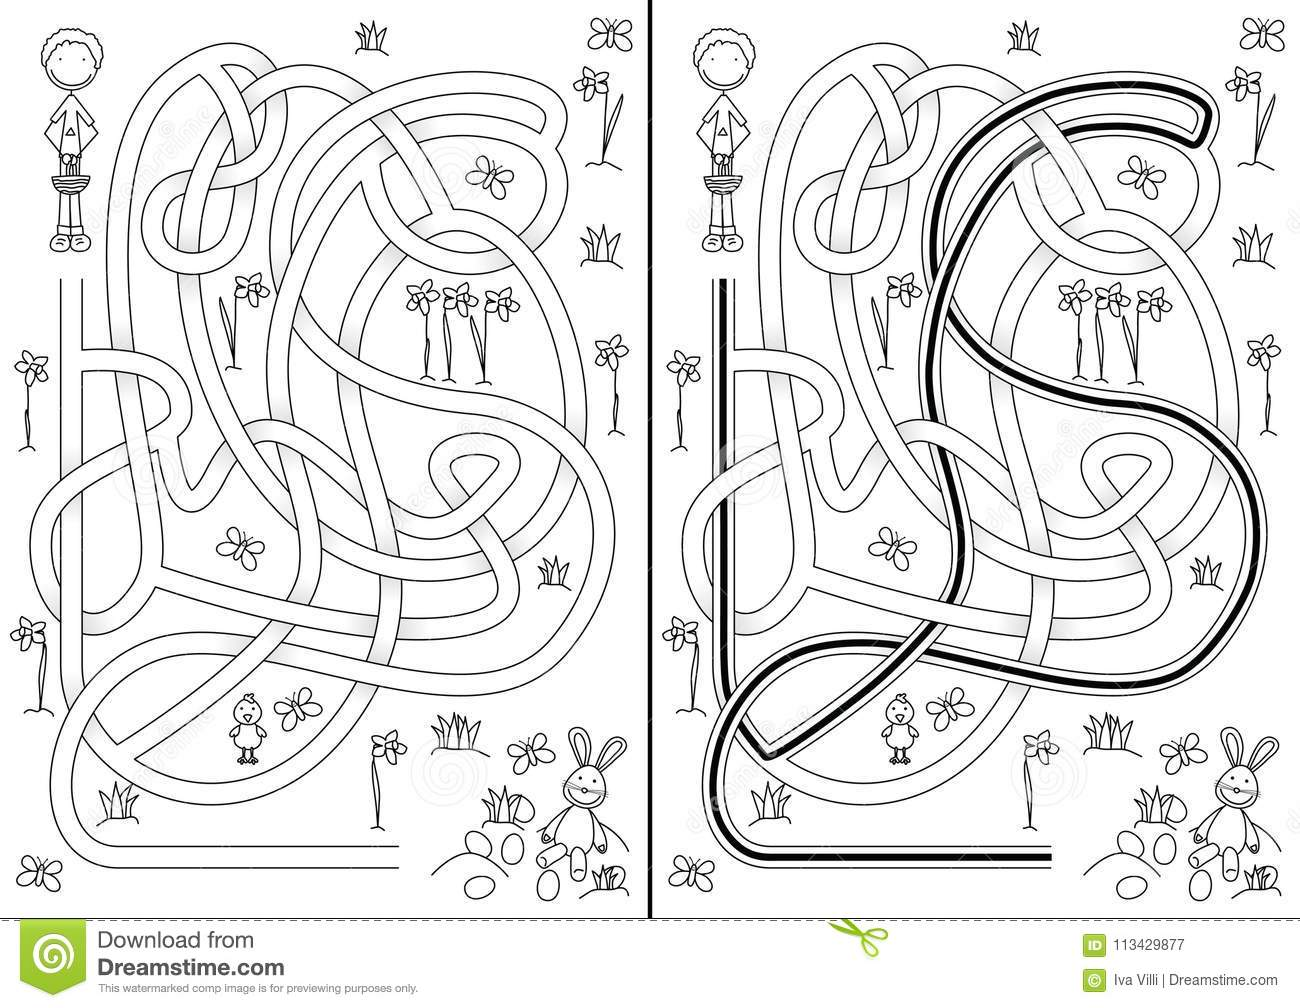 Egg hunt maze stock vector. Illustration of easter, puzzle ...